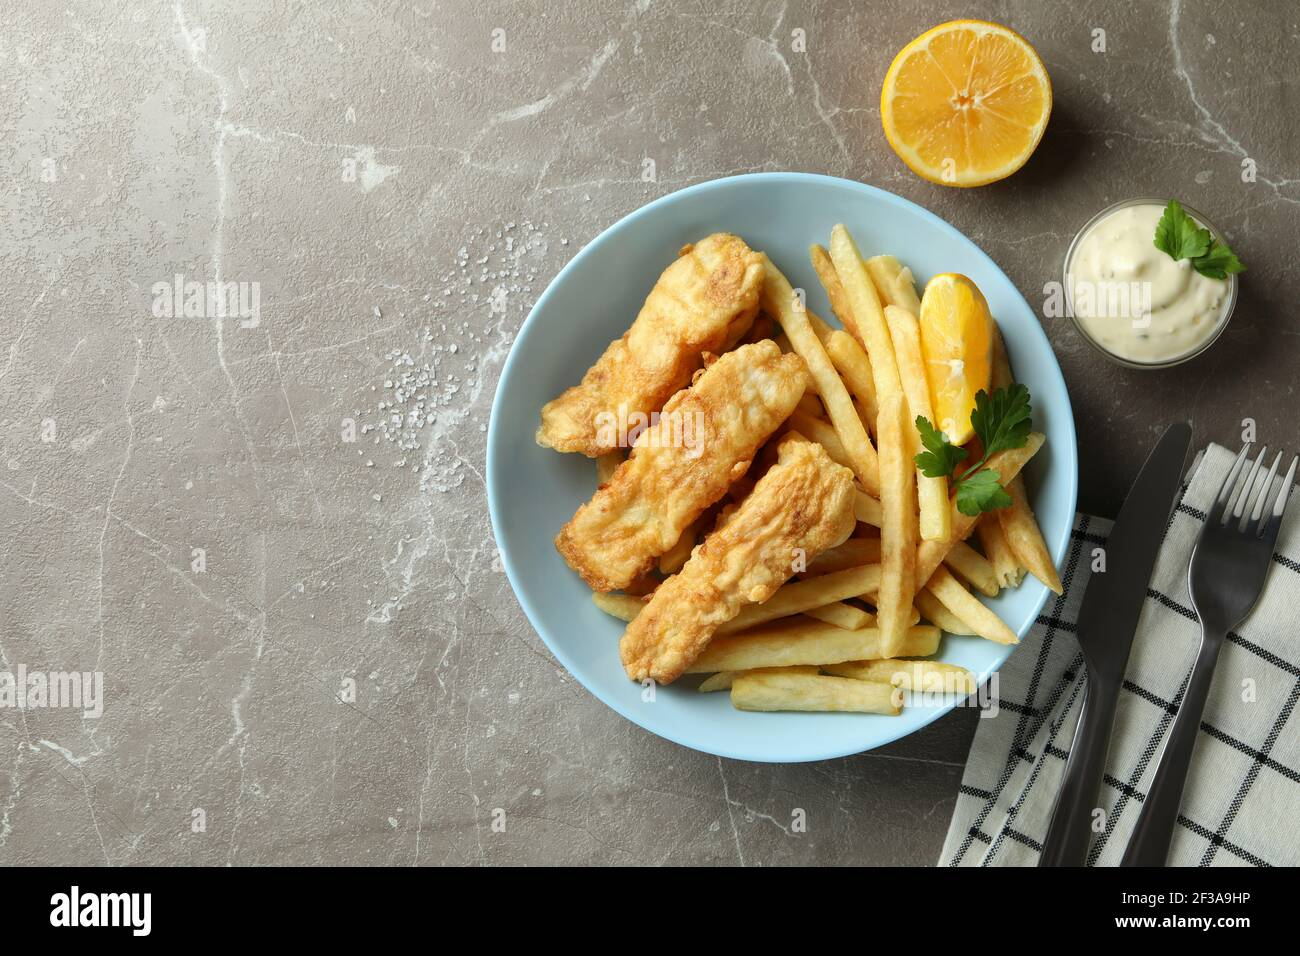 Concept of tasty eating with fried fish and chips on gray textured table Stock Photo